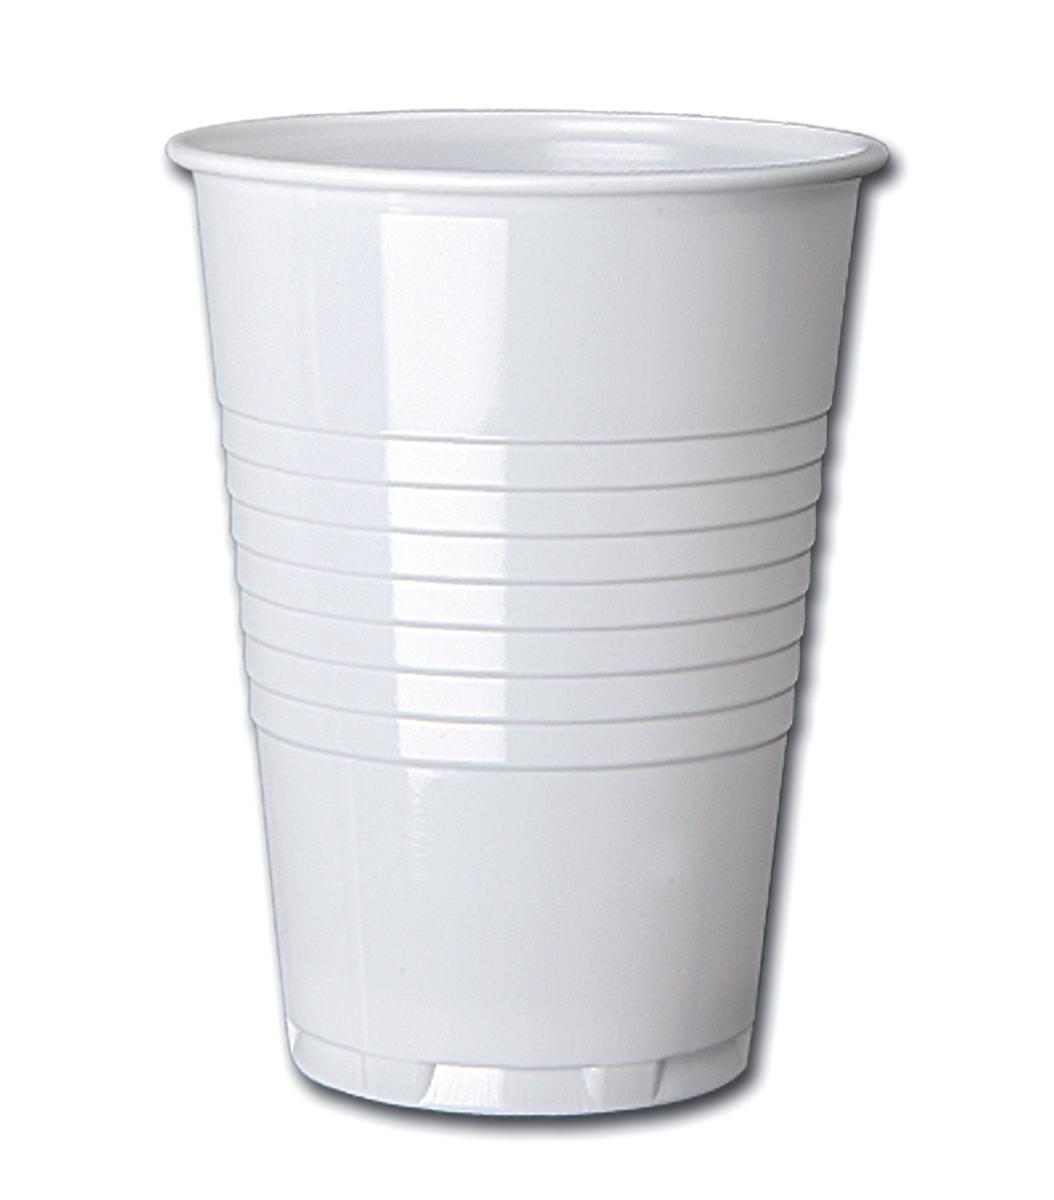 Cup for Hot Drinks Plastic for Vending Machine 7oz 200ml Tall [Pack 100]